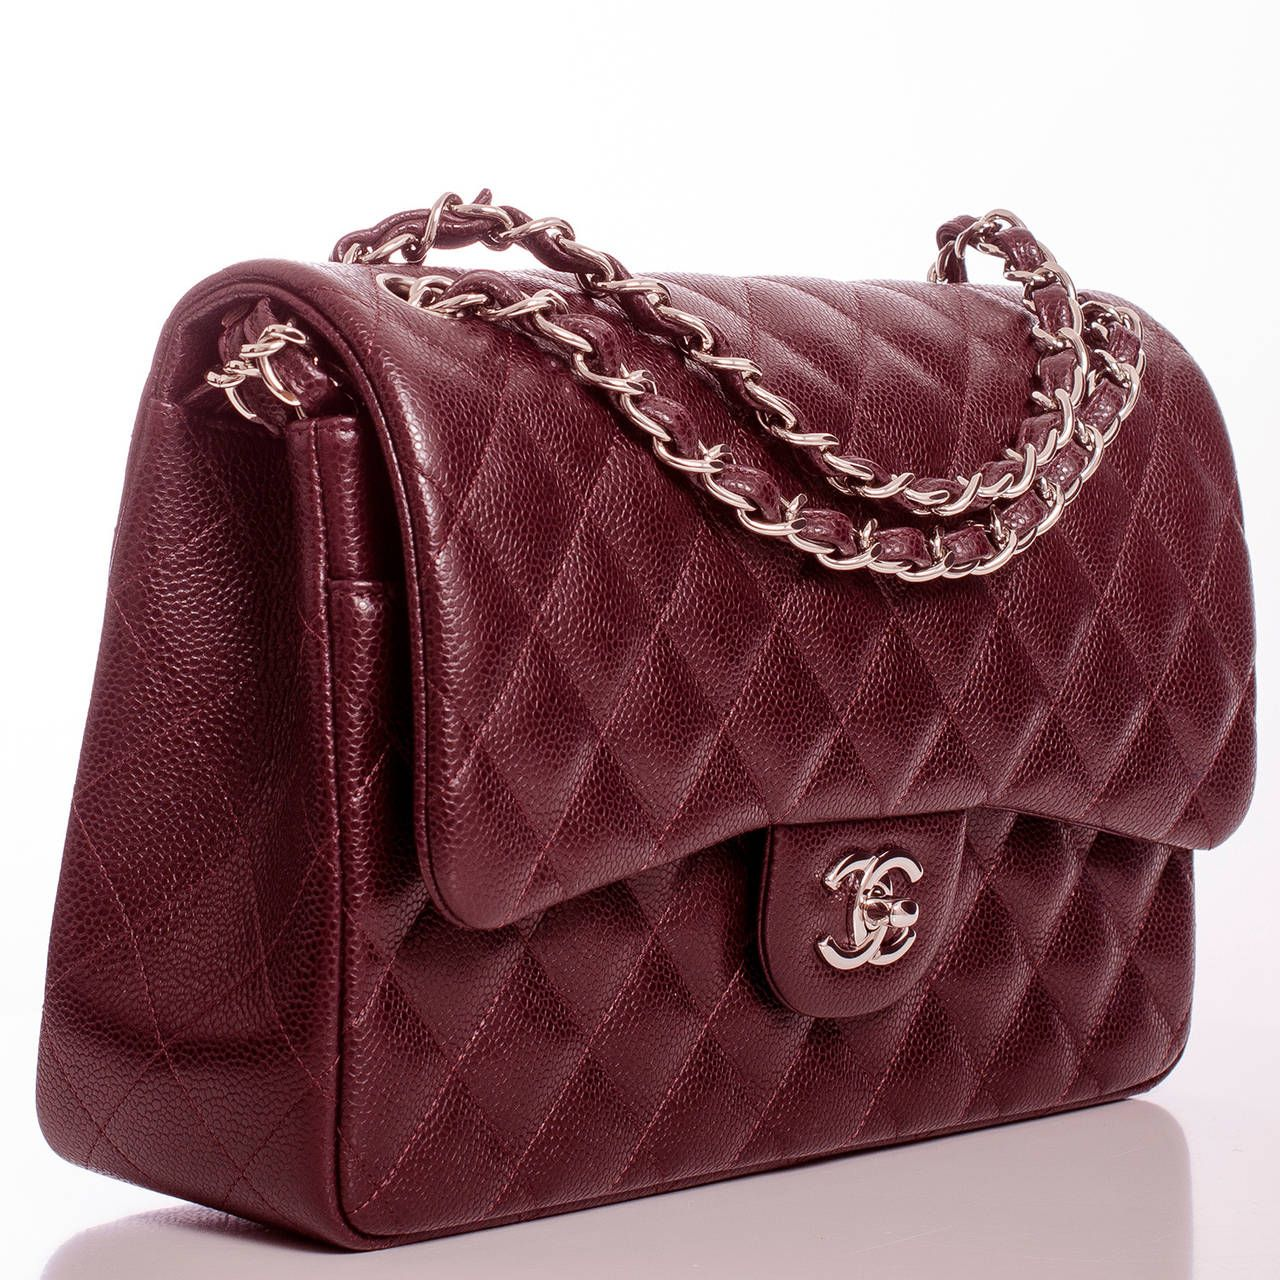 Chanel Burgundy Quilted Caviar Jumbo Classic 2 55 Double Flap Bag From A Collection Of Rare Vintage Handbags And Purses At Chanel Chanel Bag Chanel Handbags